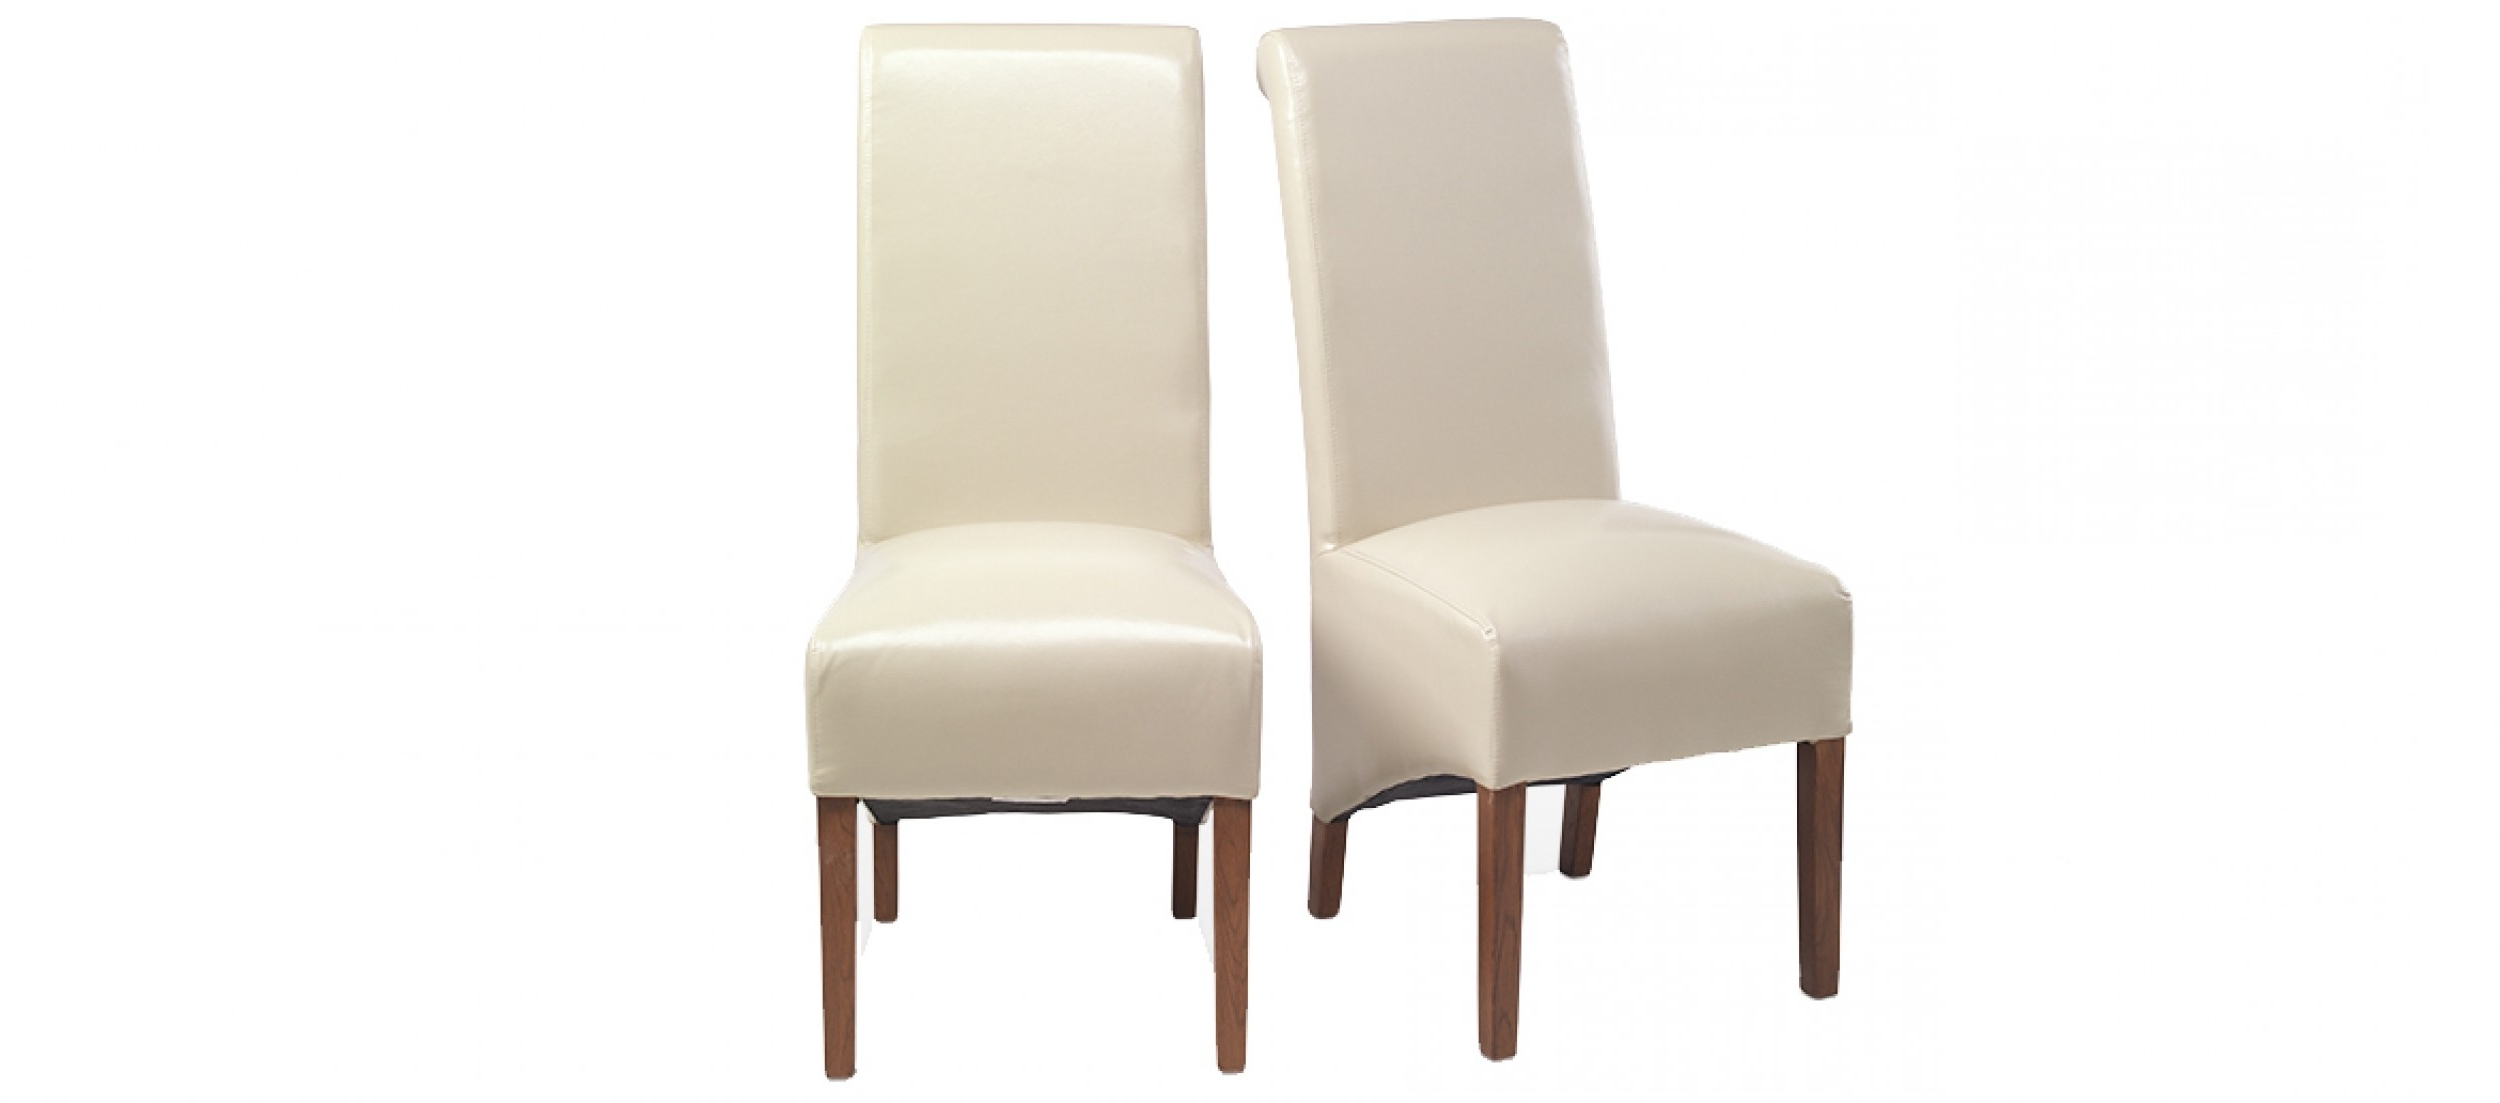 Most Recent Oak Leather Dining Chairs Within Cube Bonded Leather Dining Chairs Beige – Pair (View 11 of 25)